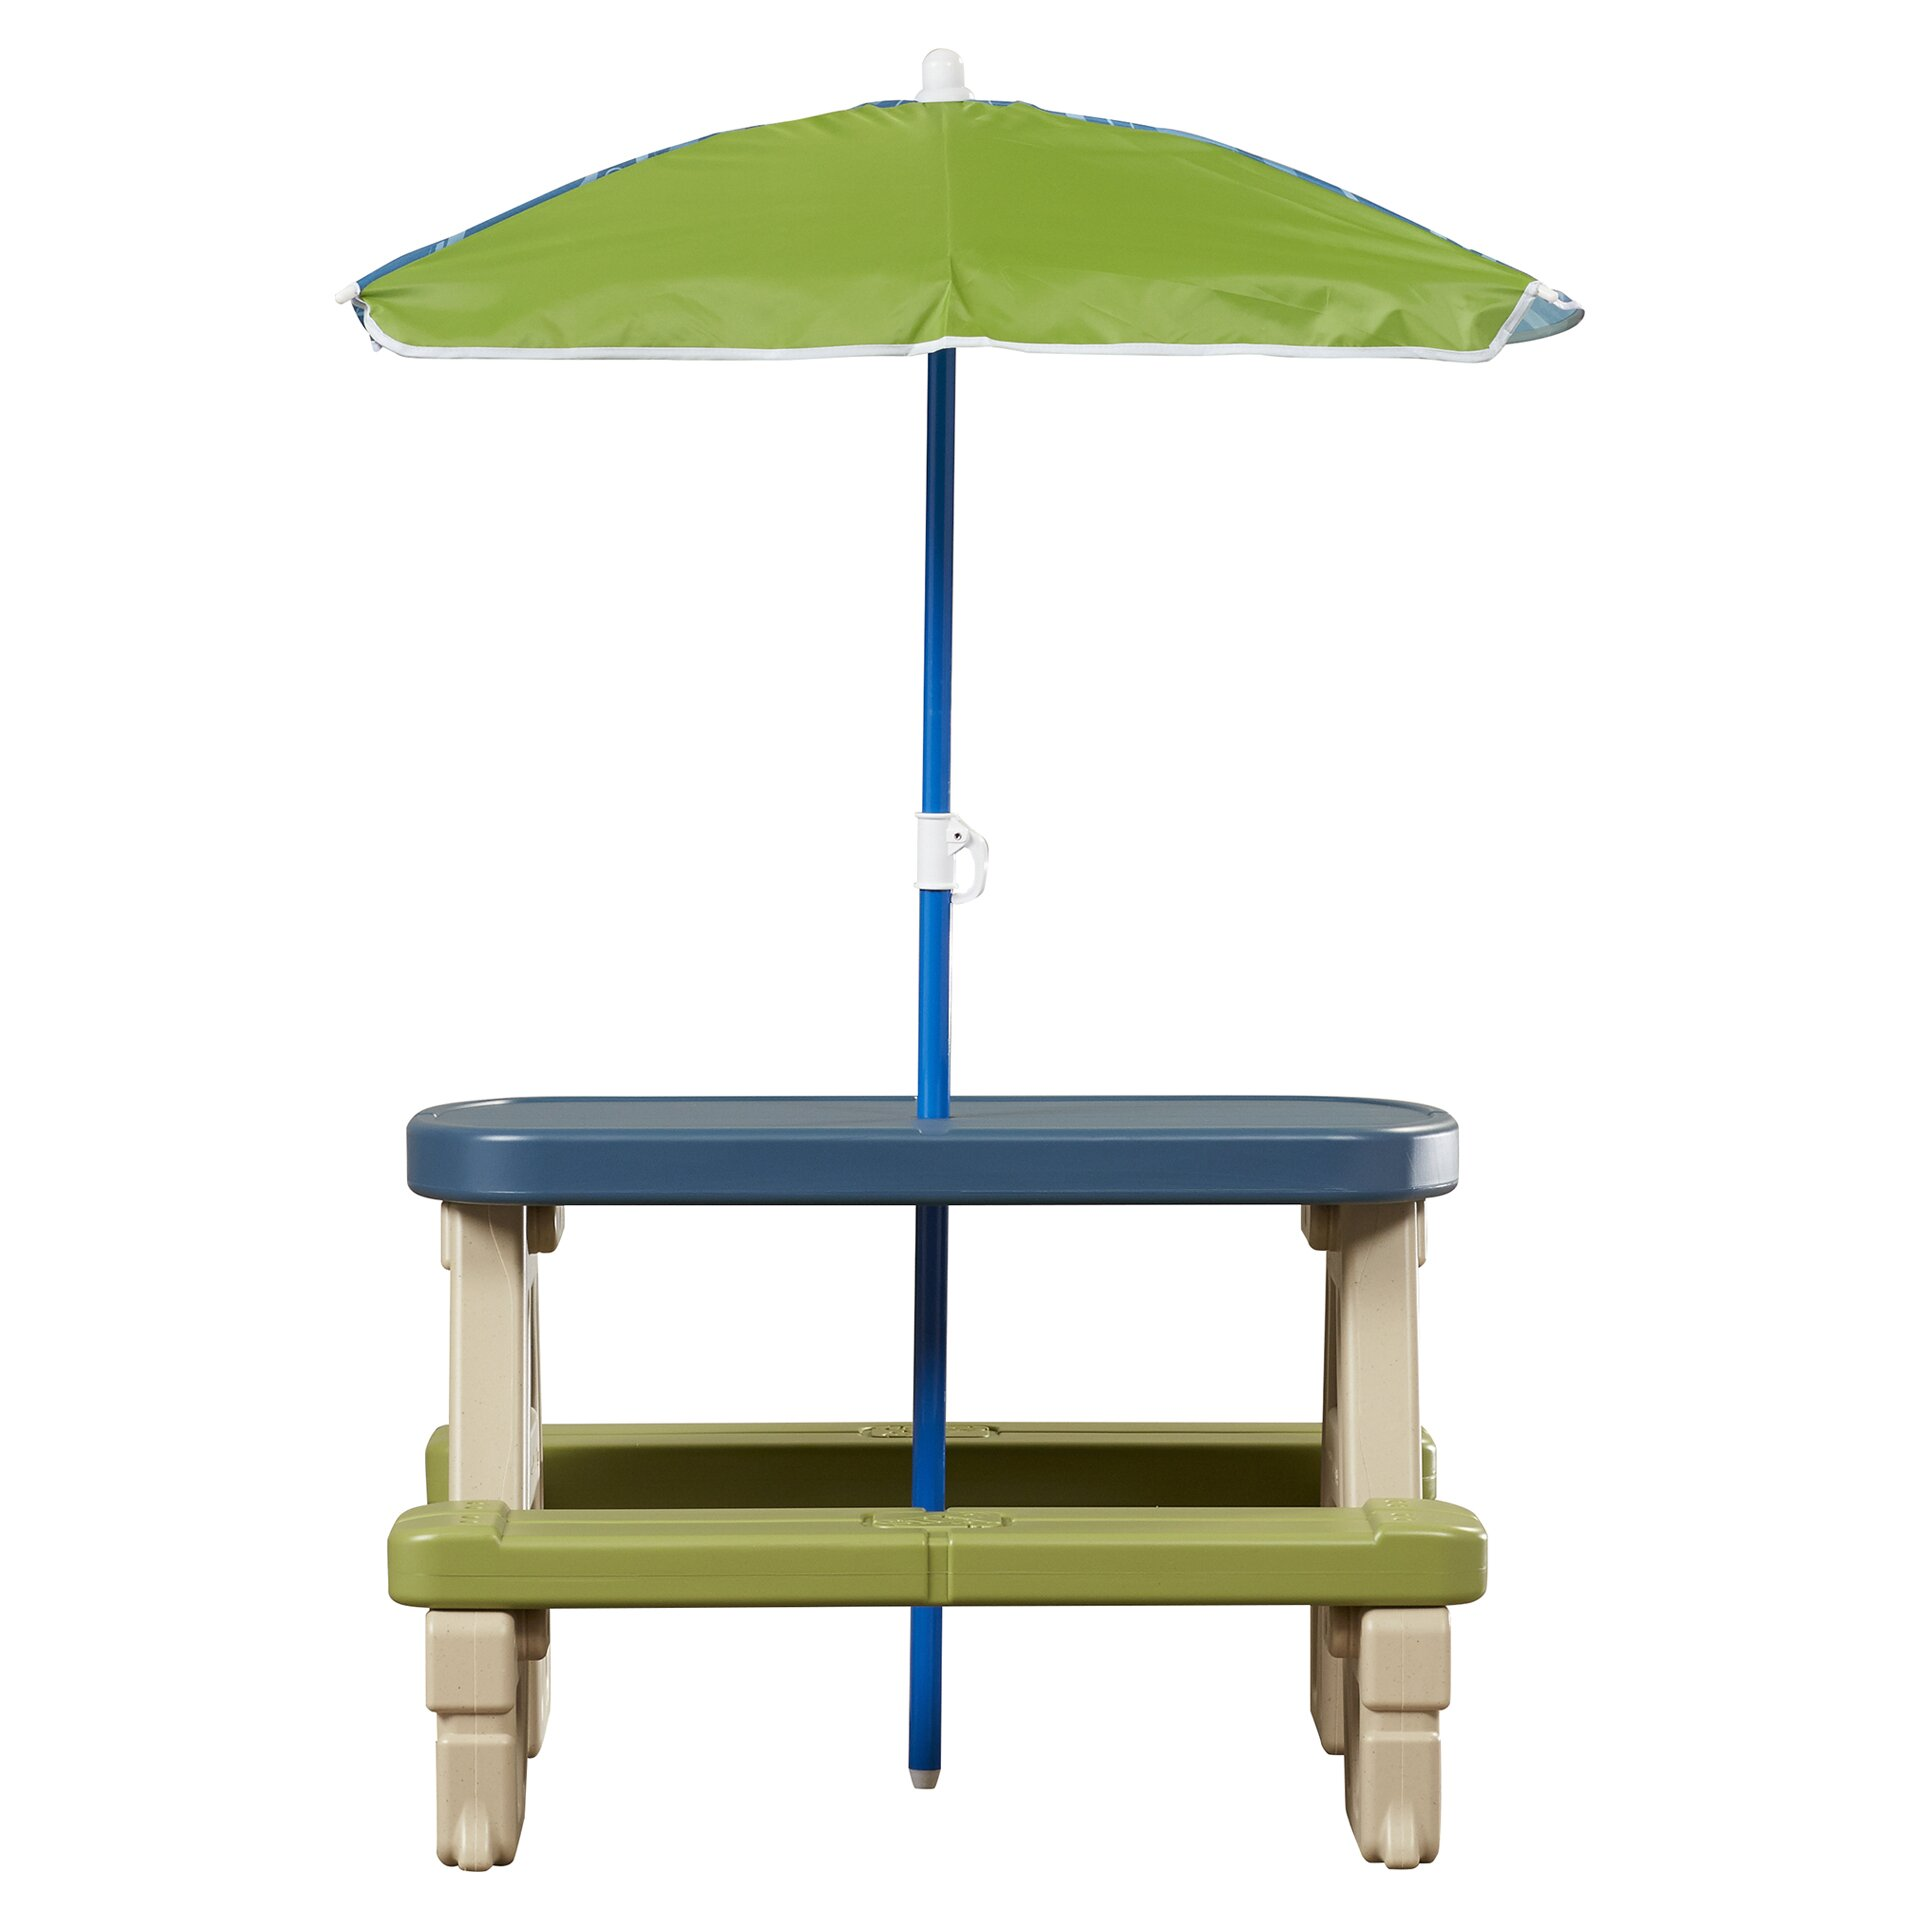 Step2 sit play picnic tablekohls step2 sit play jr picnic table step2 kids rectangle sit and play picnic table amp reviews watchthetrailerfo